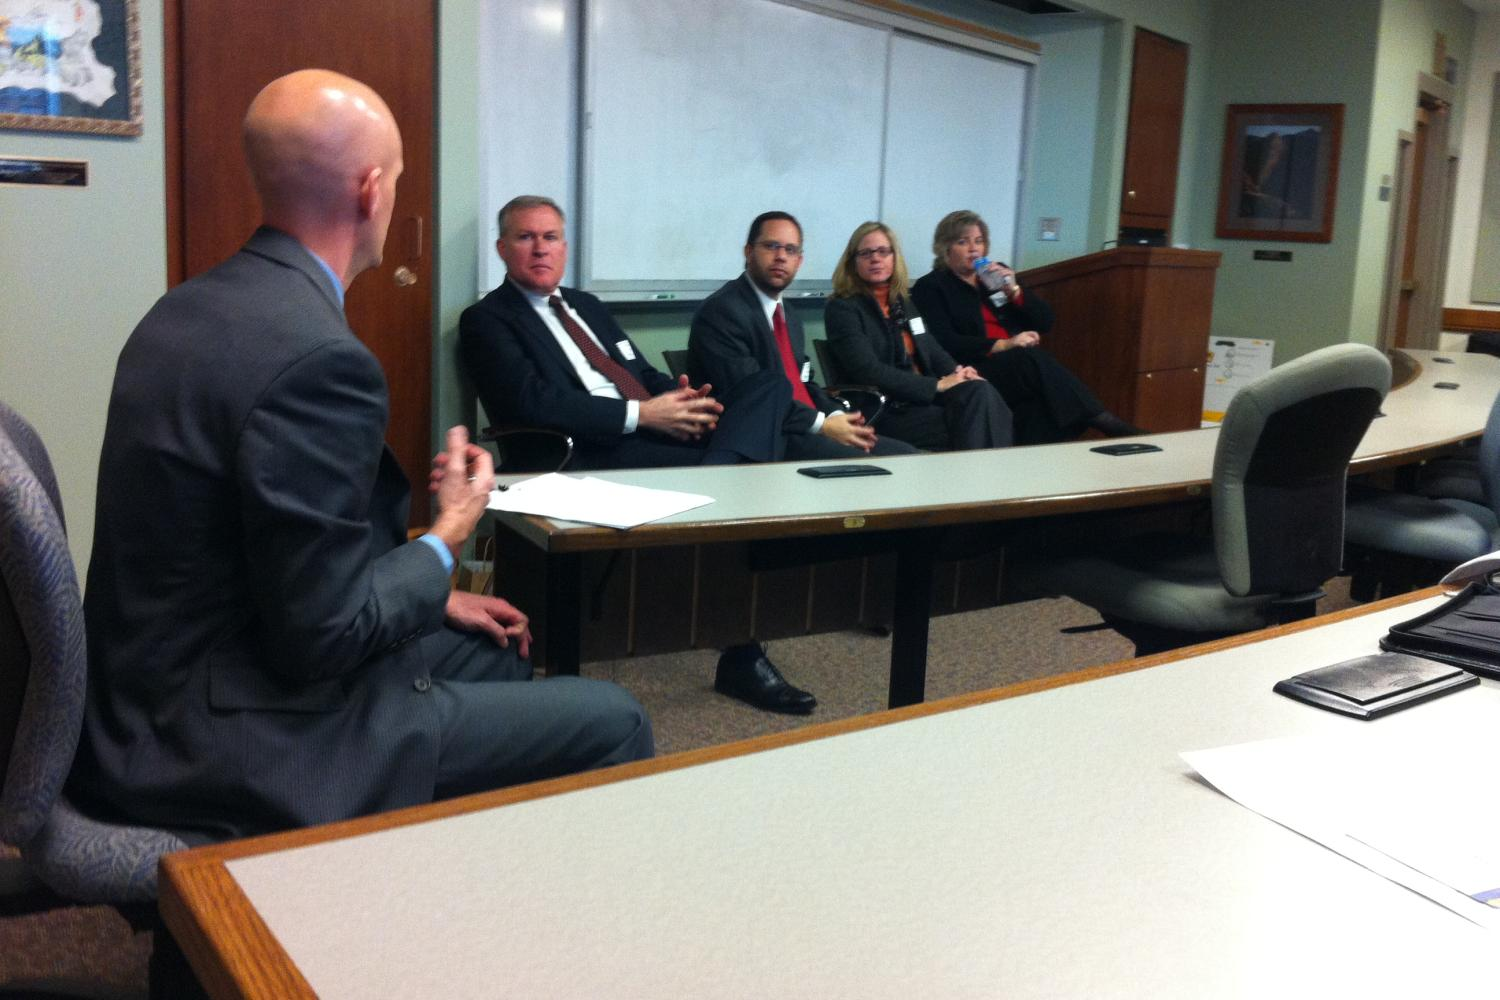 Todd Rogers moderates as Bruce Dahl (Fennemore Craig), David Thrower (Dietze & Davis), Kim Lord (Packard Dierking), and Jane Young (McElroy Deutsch Mulvaney & Carpenter) speak at the Business of Law/Law Firm Economics Panel.